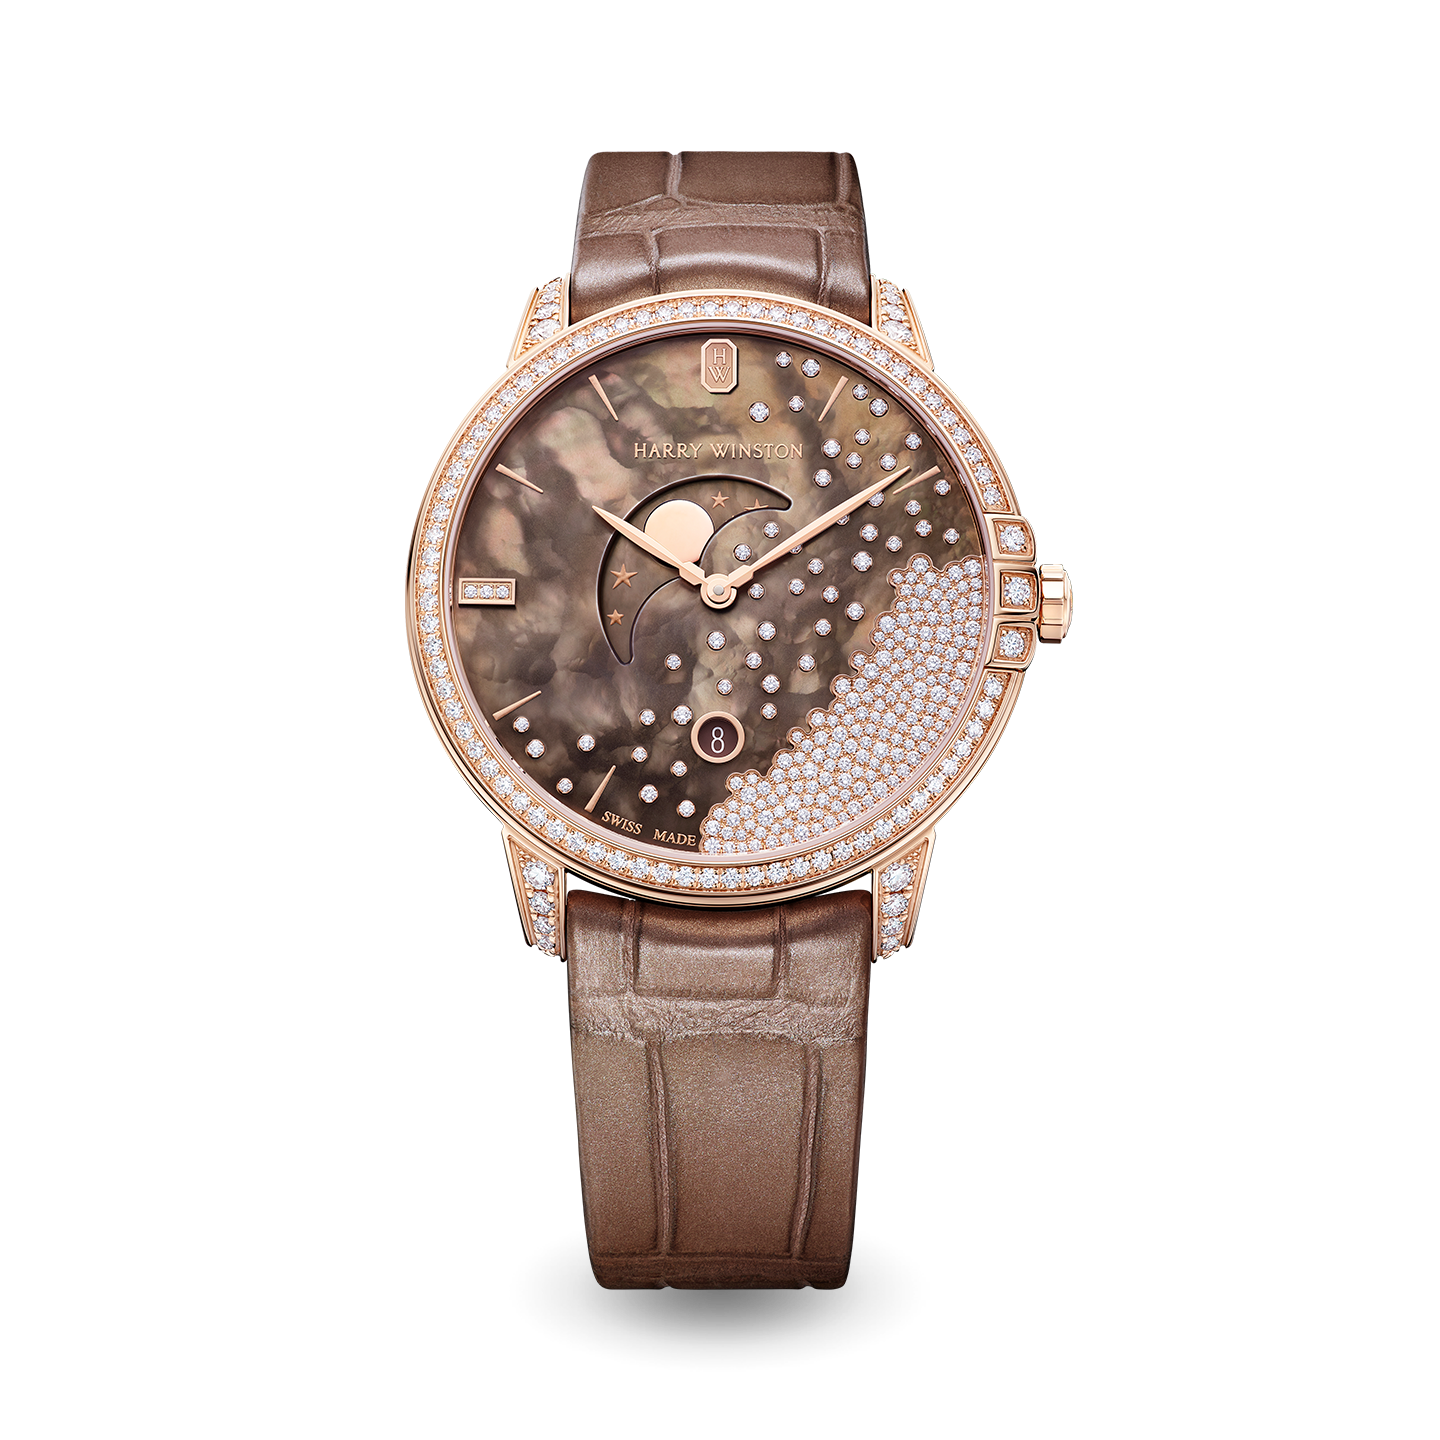 Midnight Diamond Drops Chocolate 39mm, product image 1